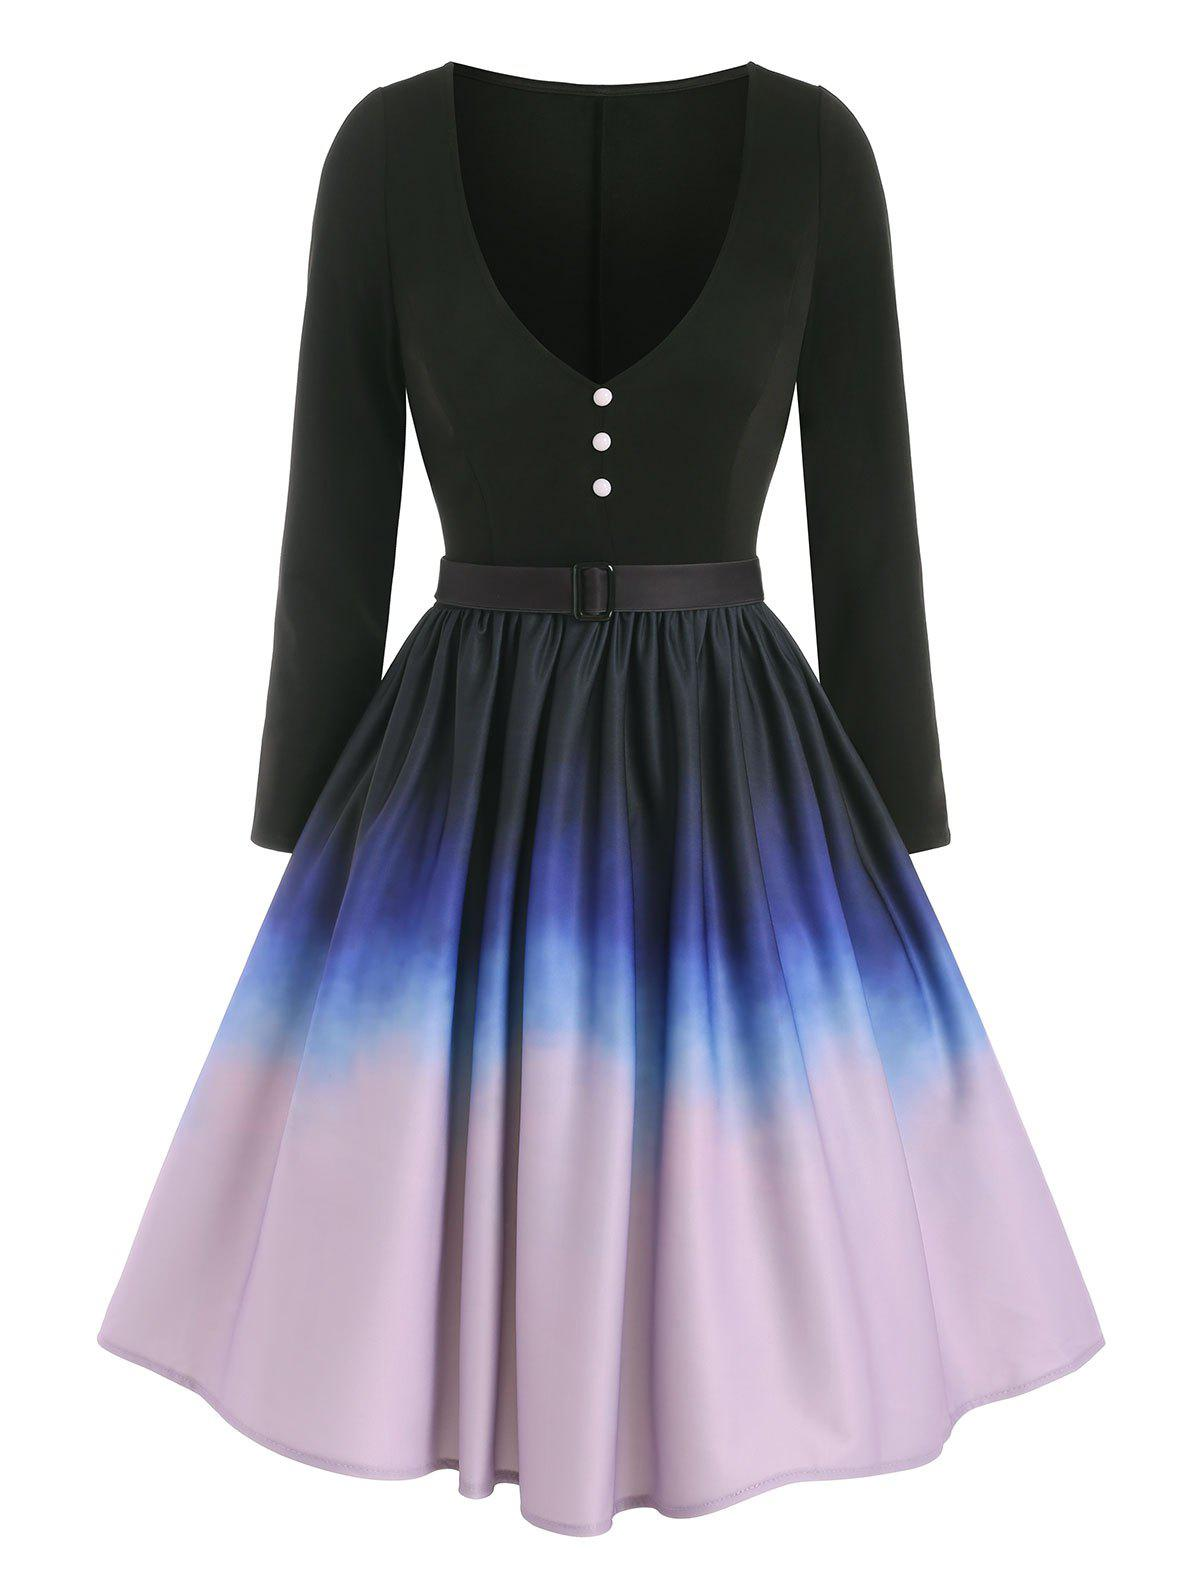 Ombre Mock Button Belted Dress - BLACK 2XL